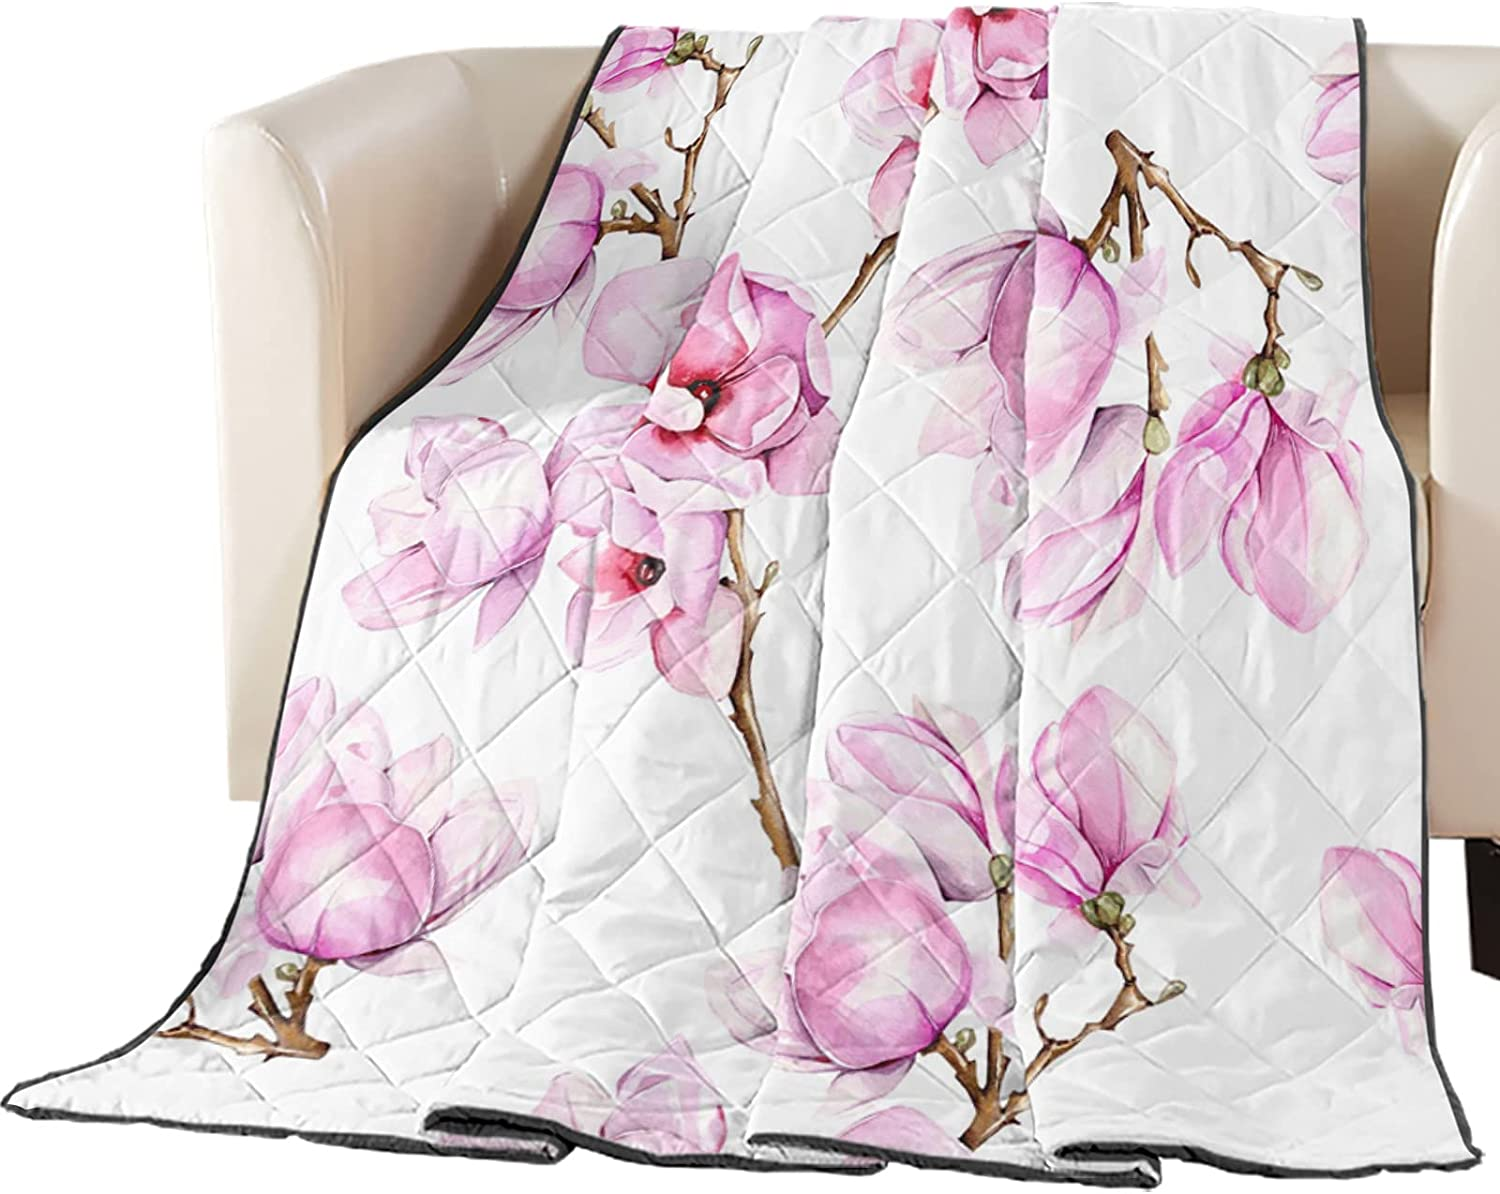 Luck Sky Premium Brand Cheap Sale Venue New product type Coverlet Diamond Stitched Quilted Pink 90x102in